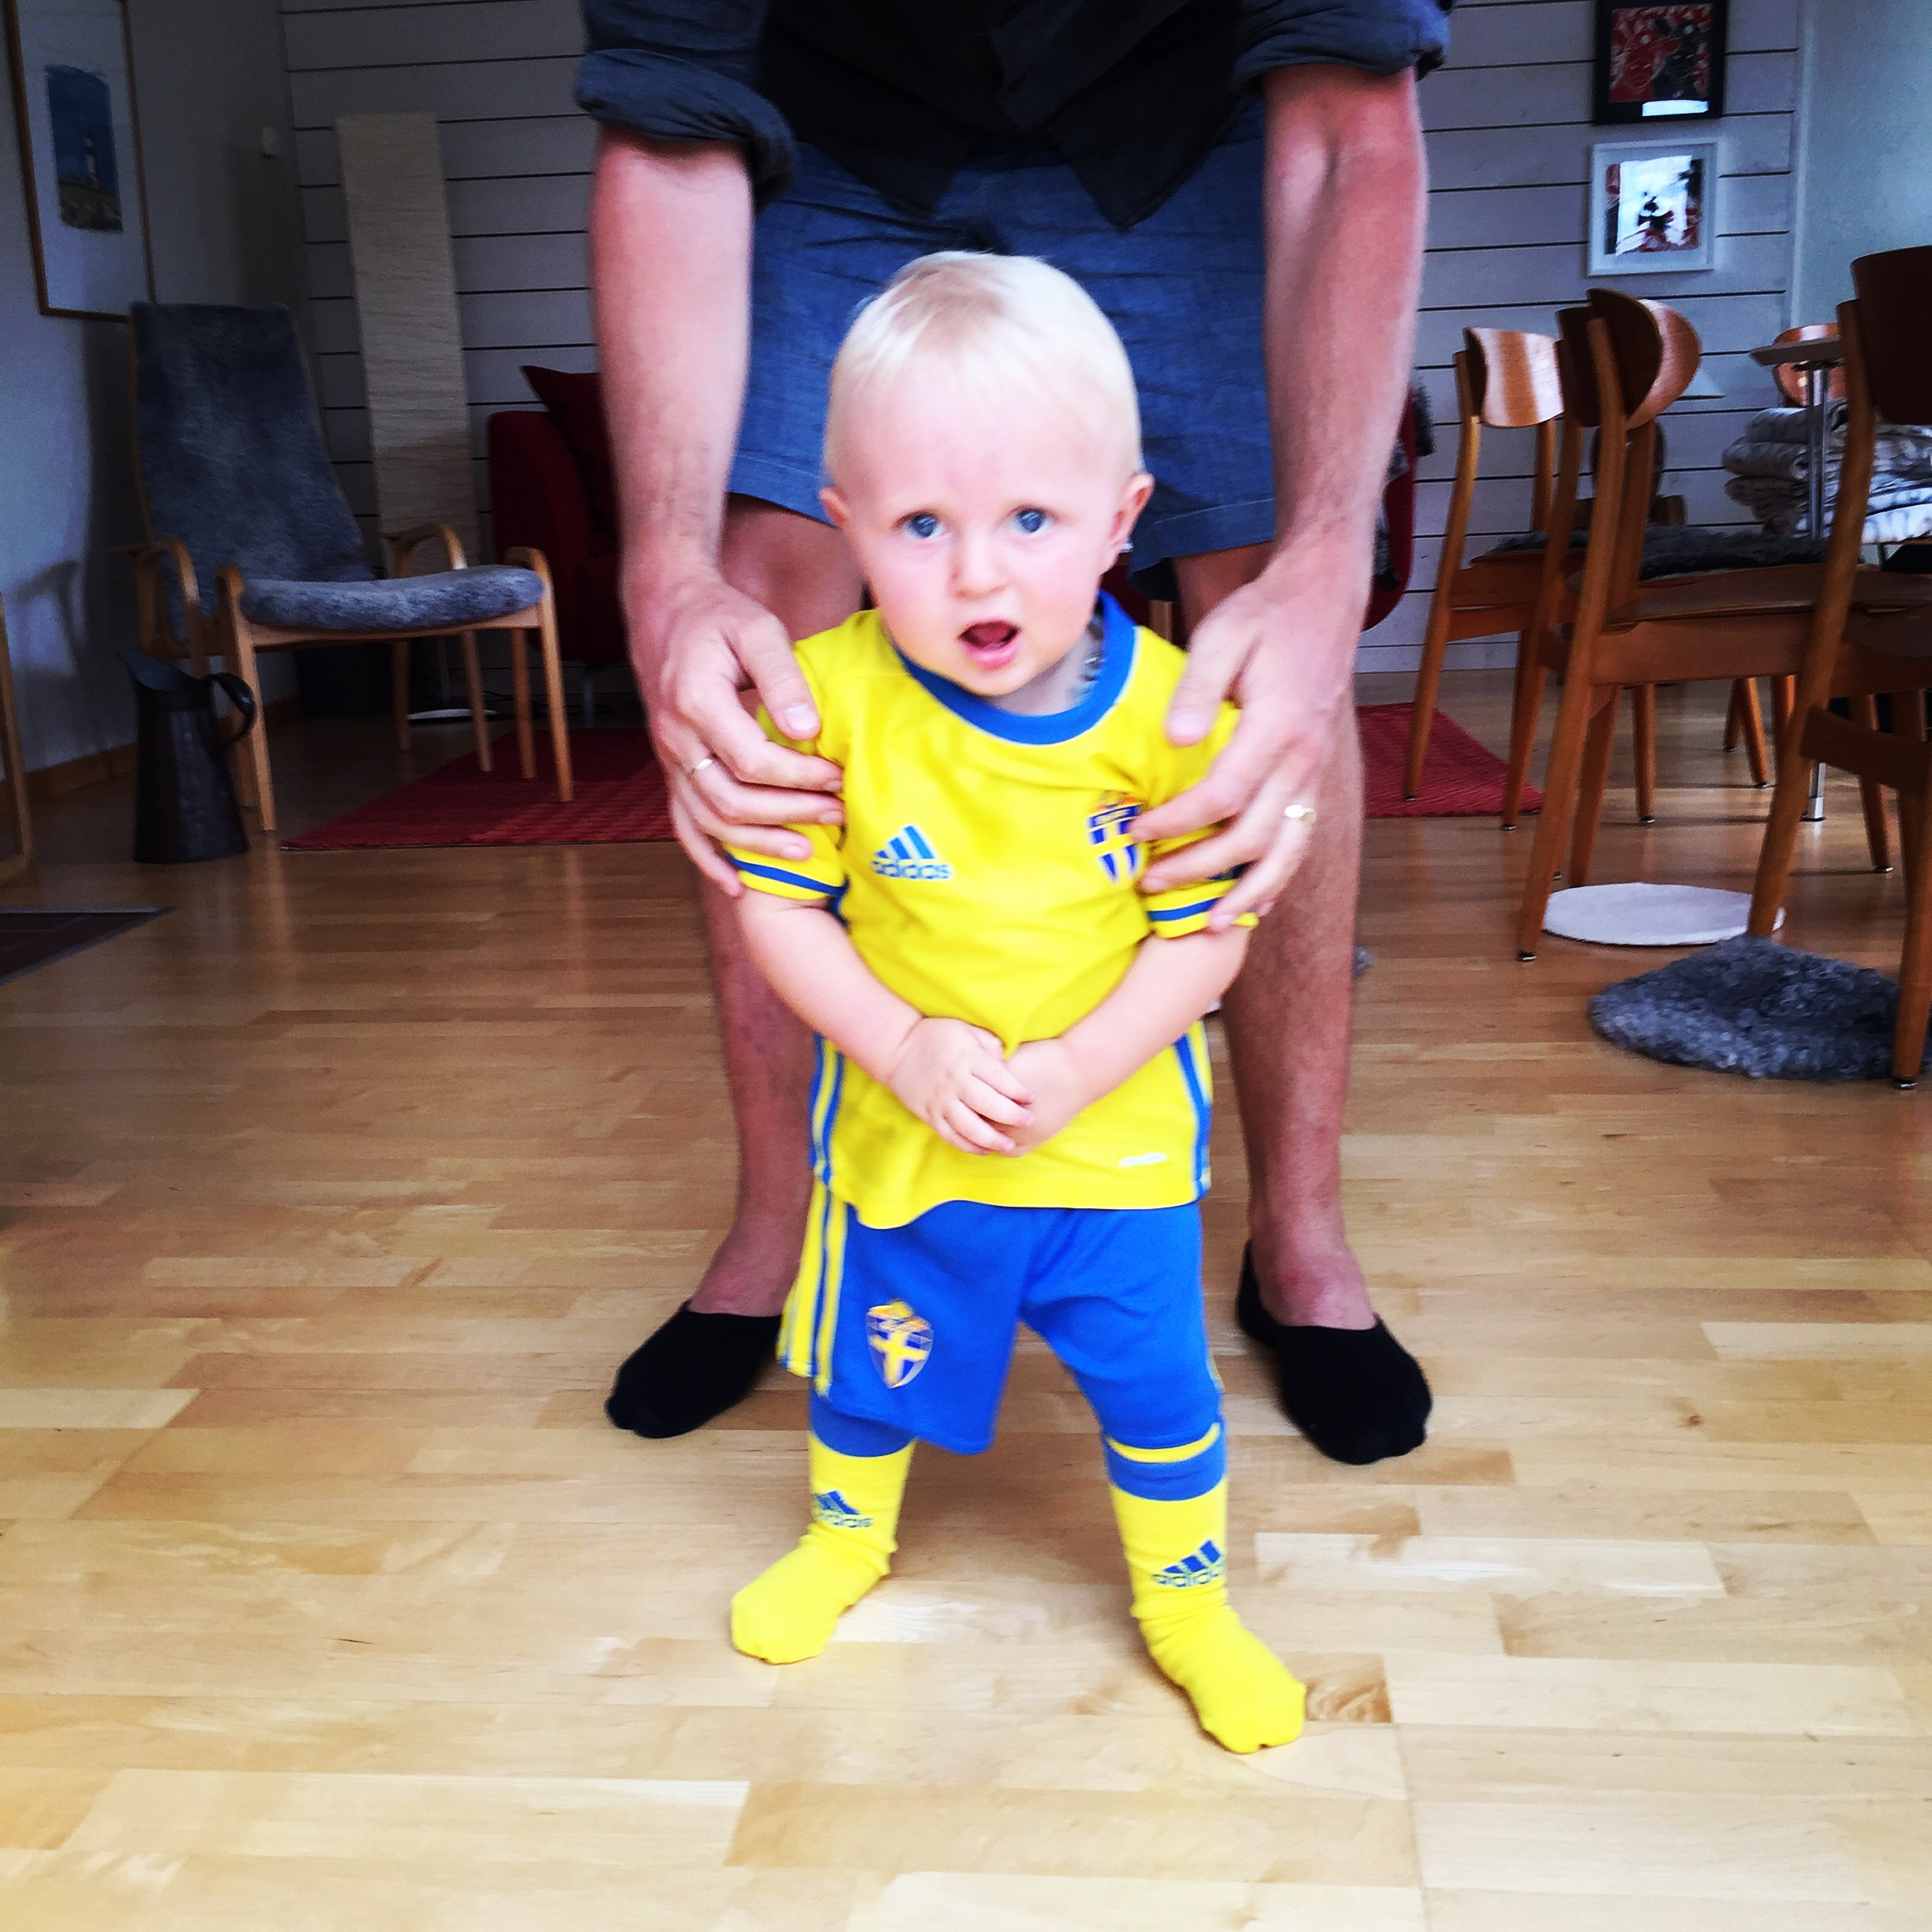 He's clearly upset about wearing a Sweden soccer jersey